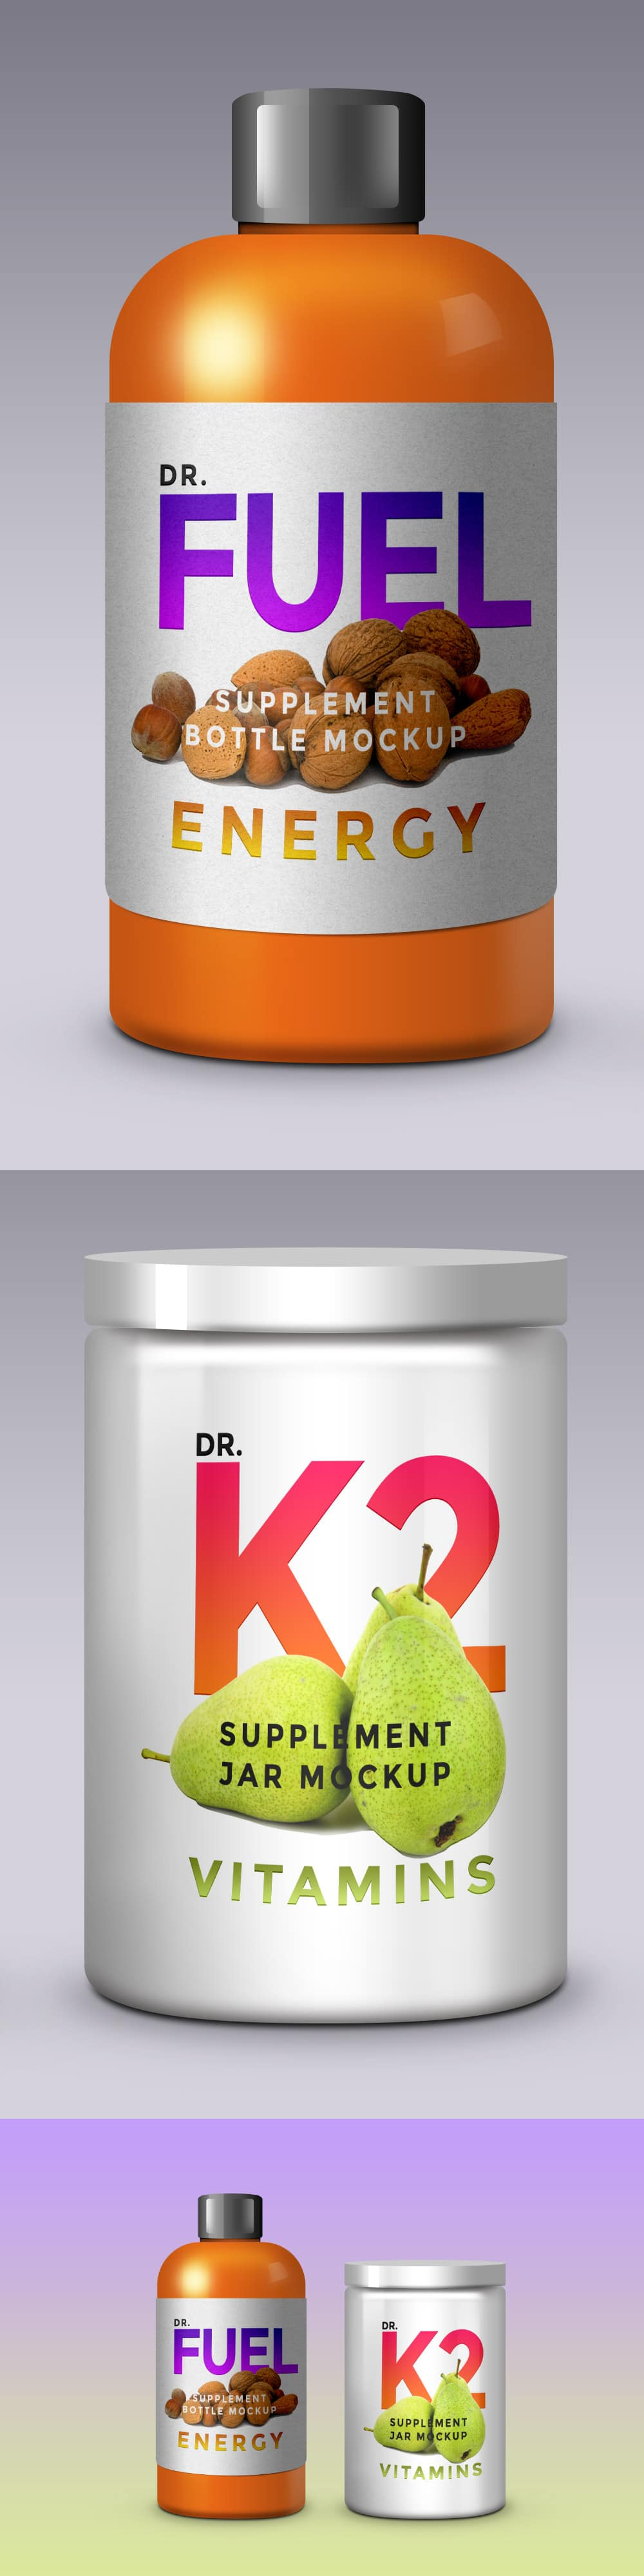 3D Supplement Products Packaging